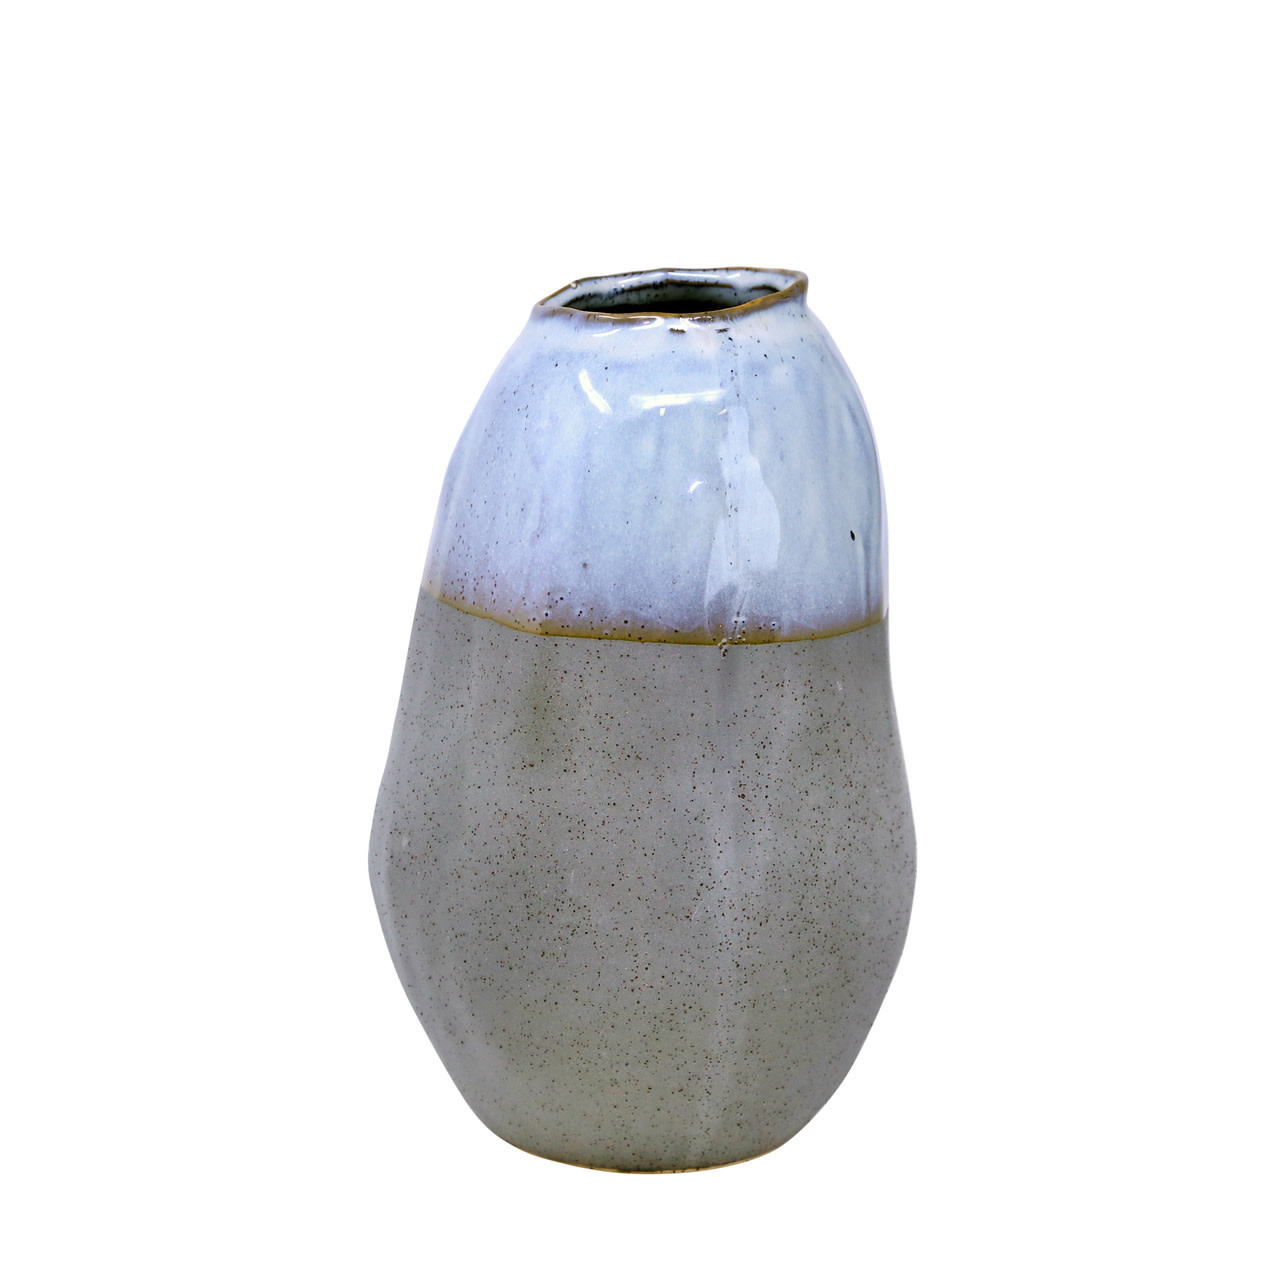 "Fleurish Home CERAMIC 10"" ORGANIC VASE, GRAY"